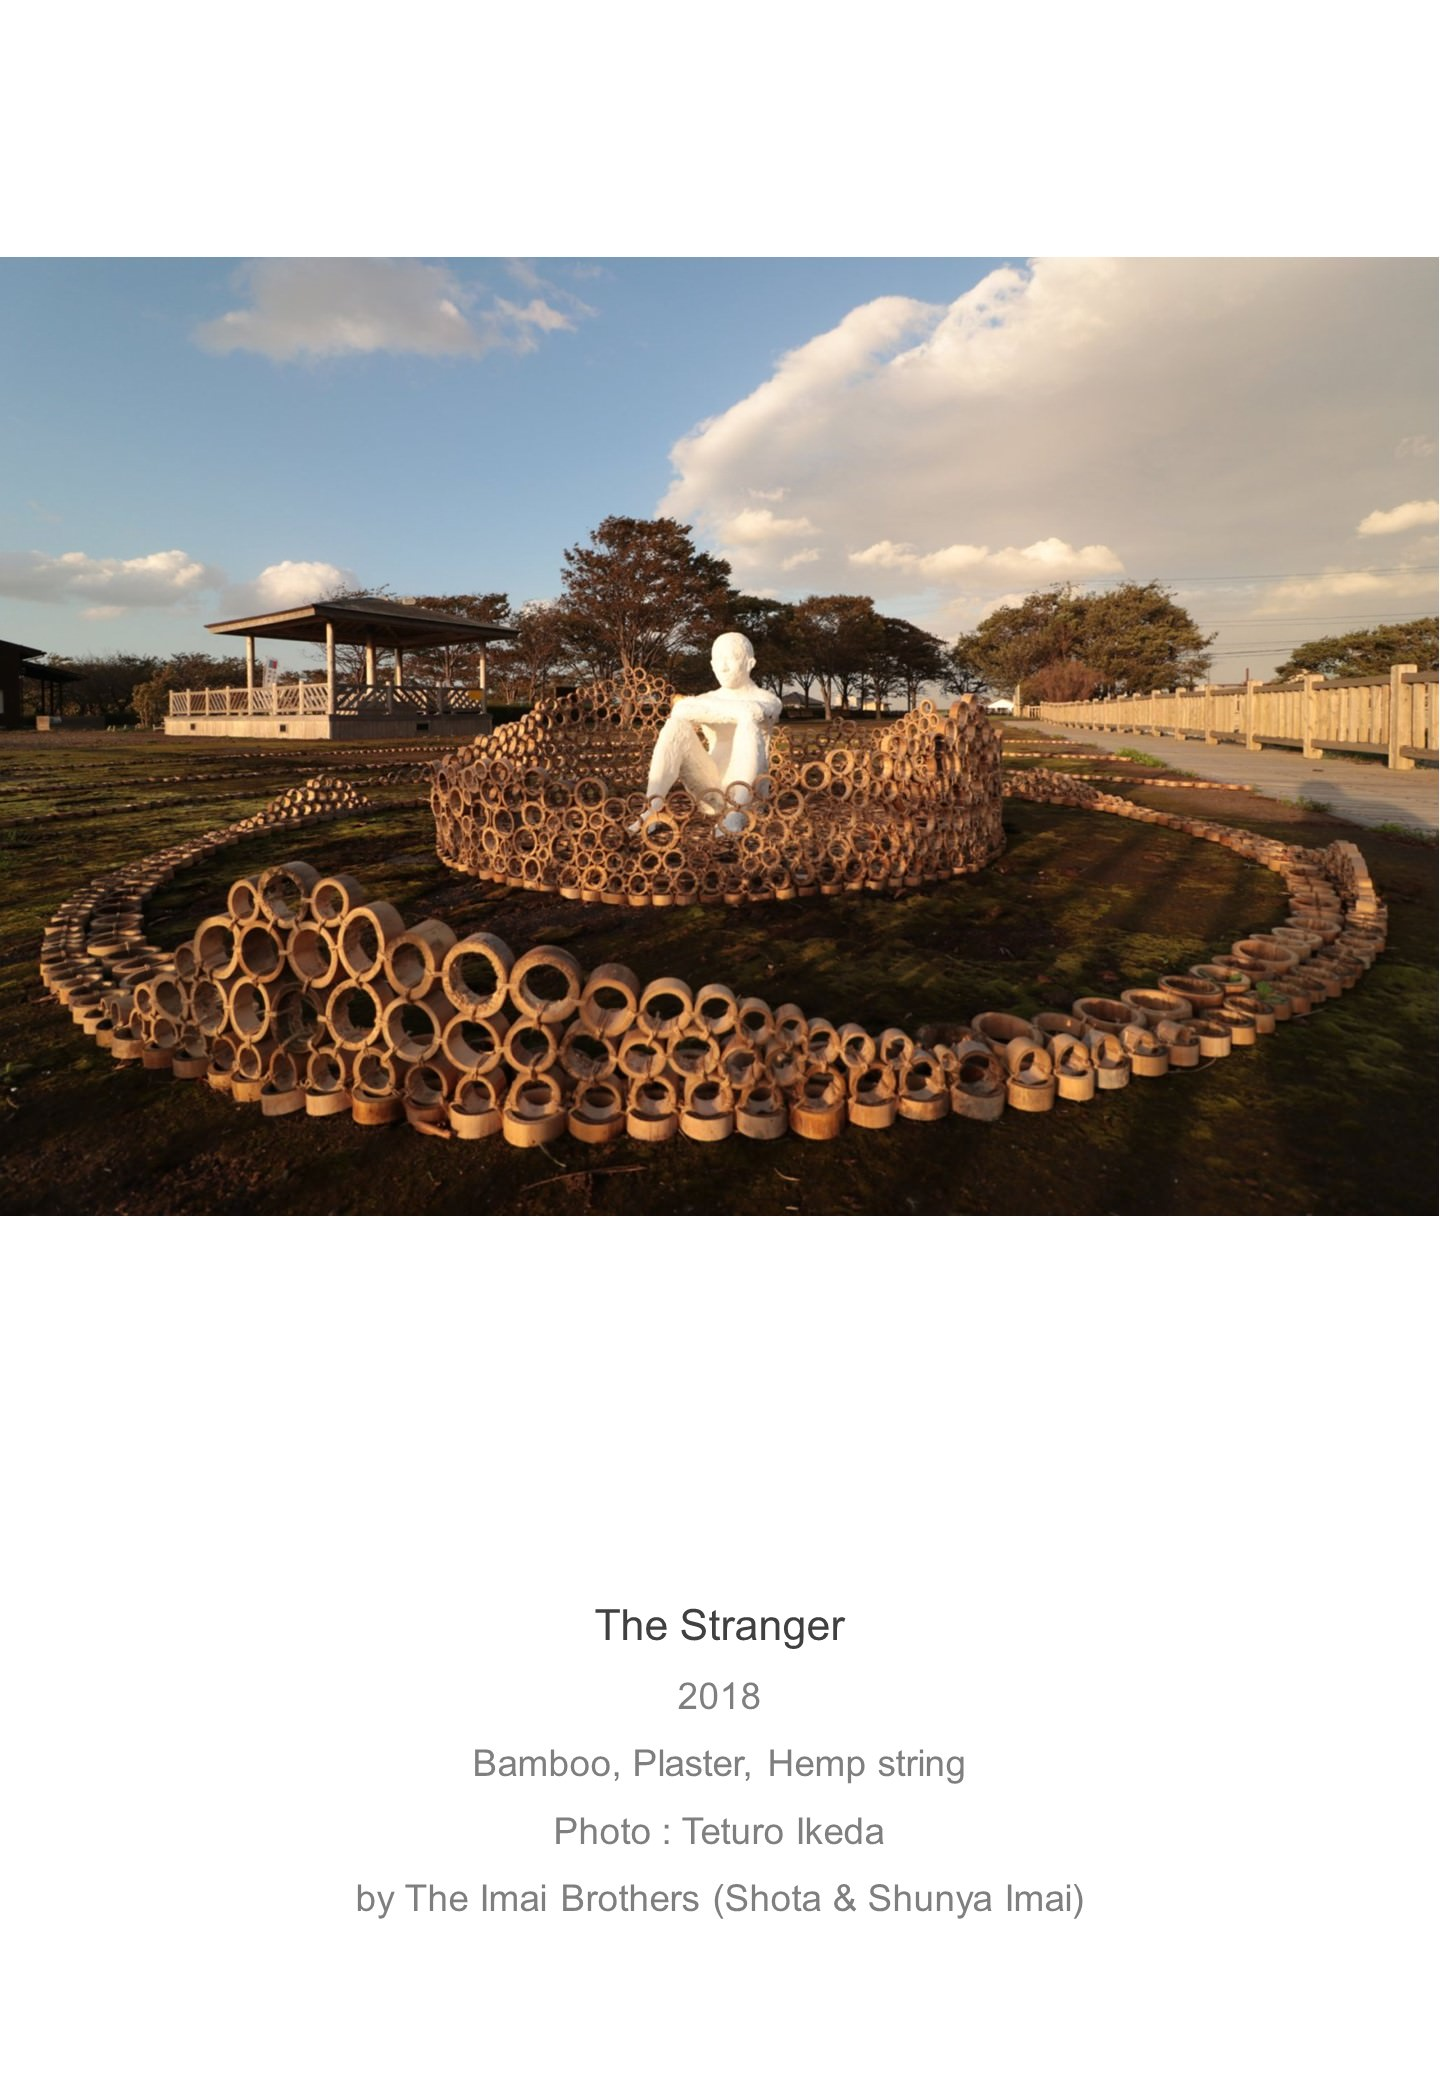 The Imai Brothers's Artwork of The Stranger